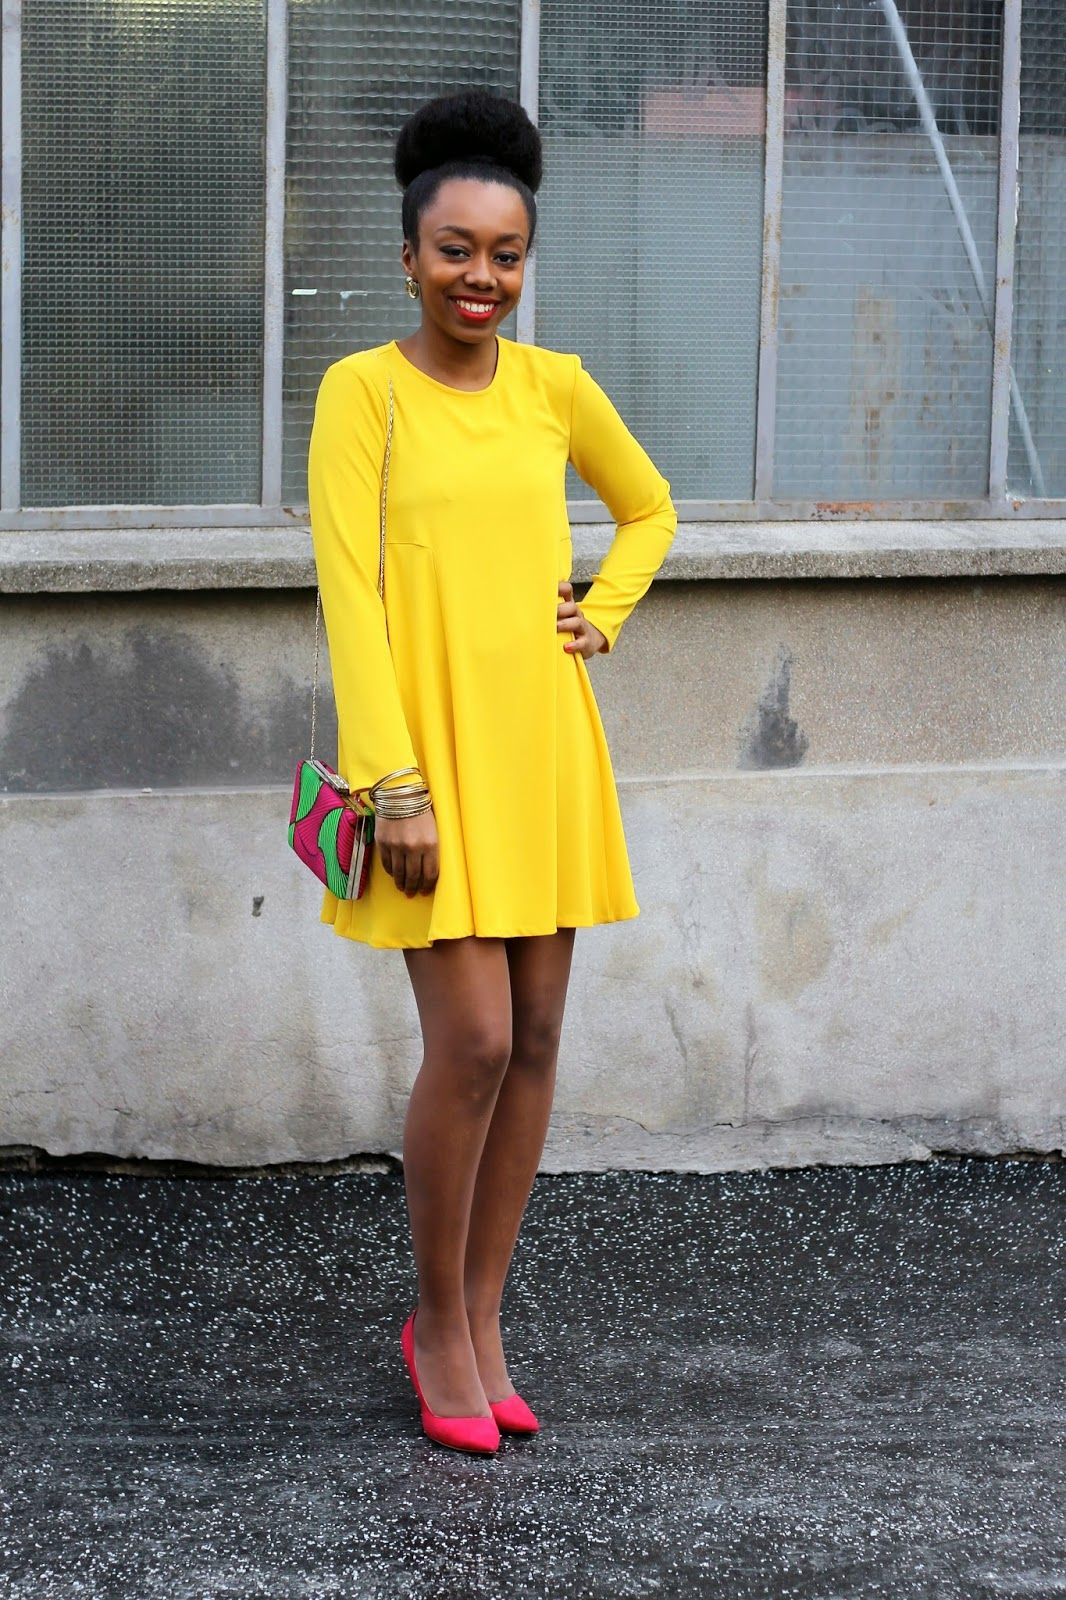 e1b88ed4061 Yellow dress   pink shoes